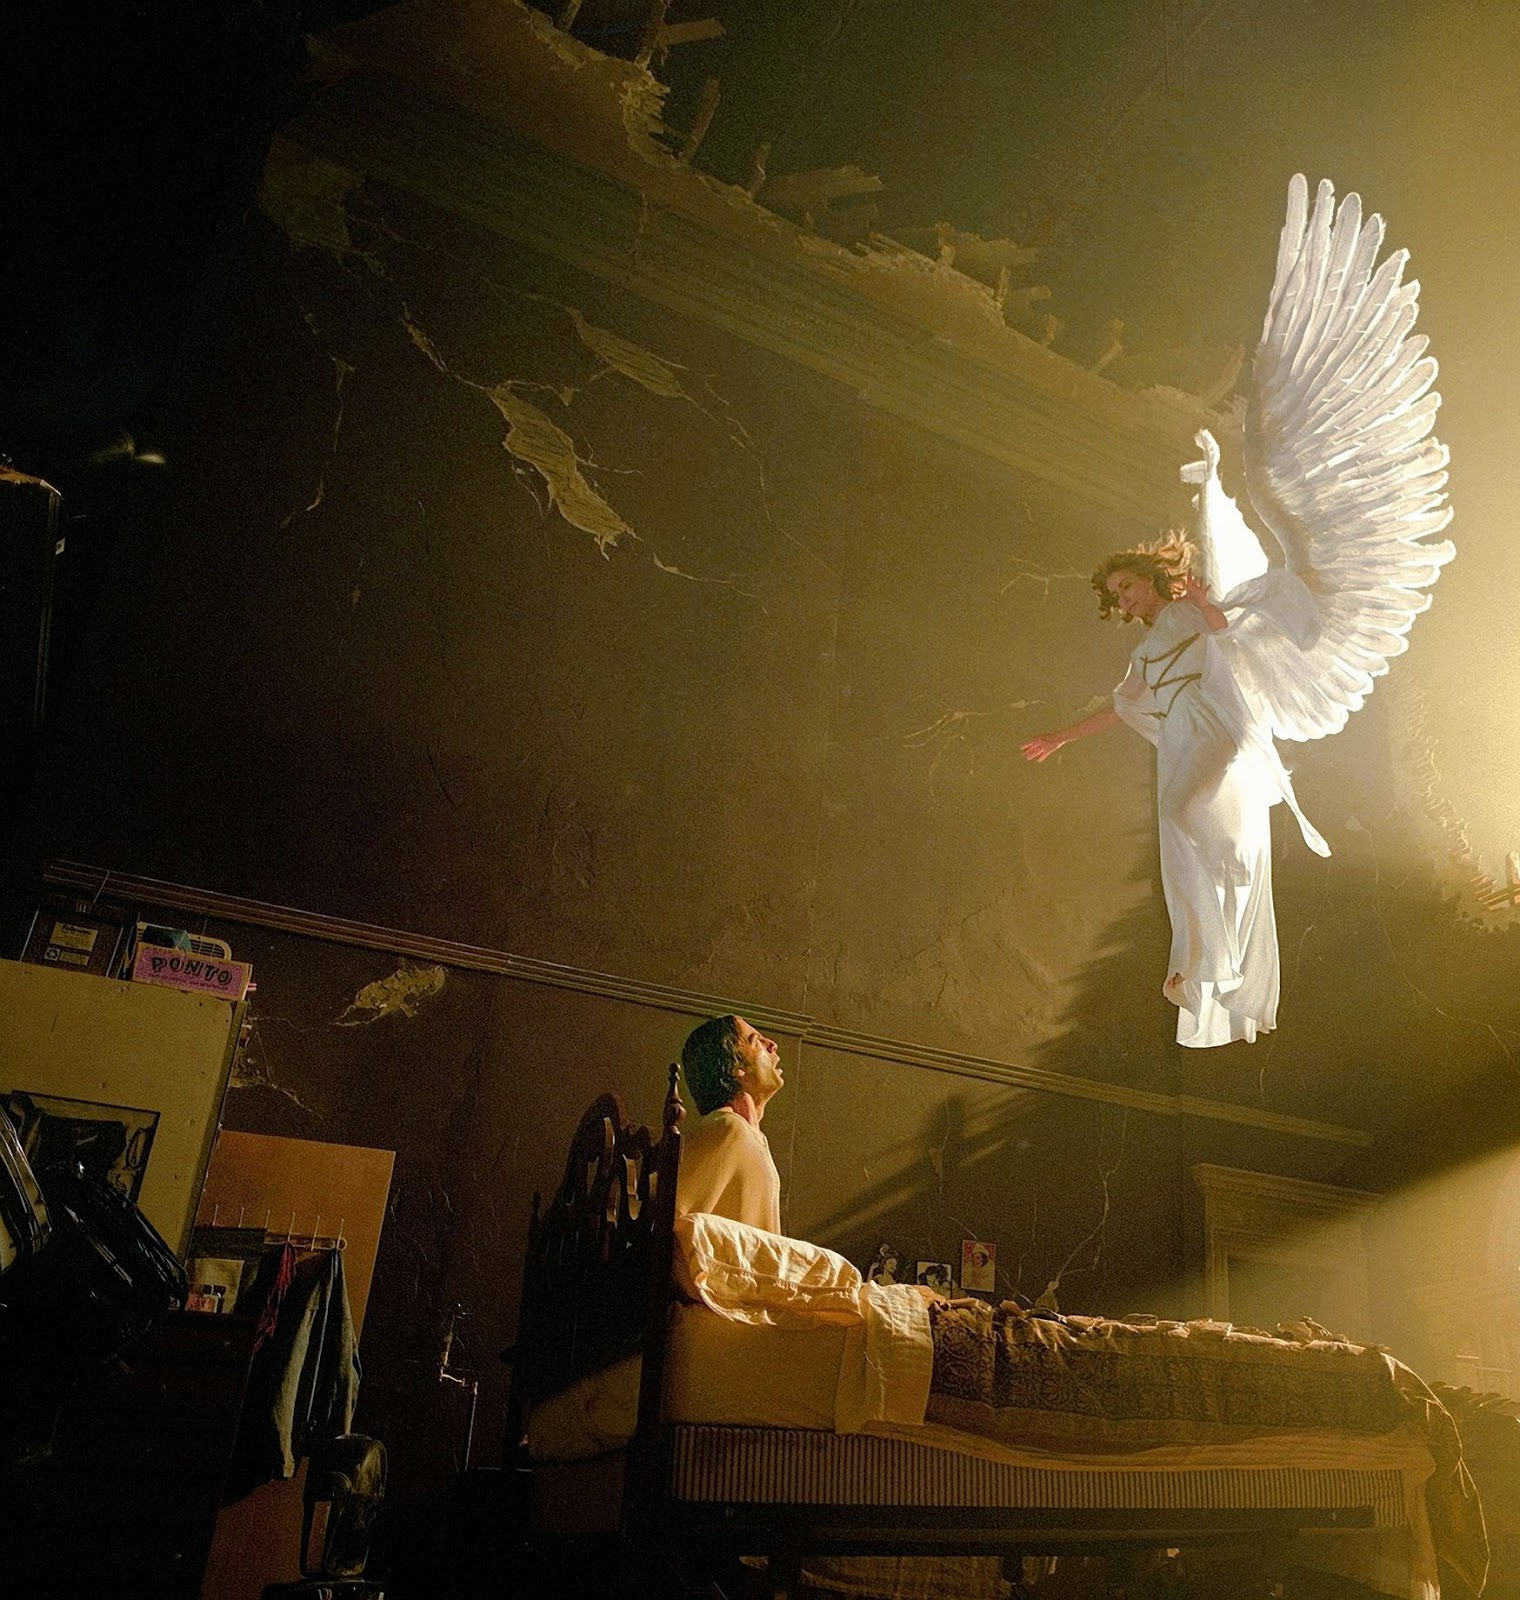 The ultimate angel, or messenger, of the Lord would have to be Jesus